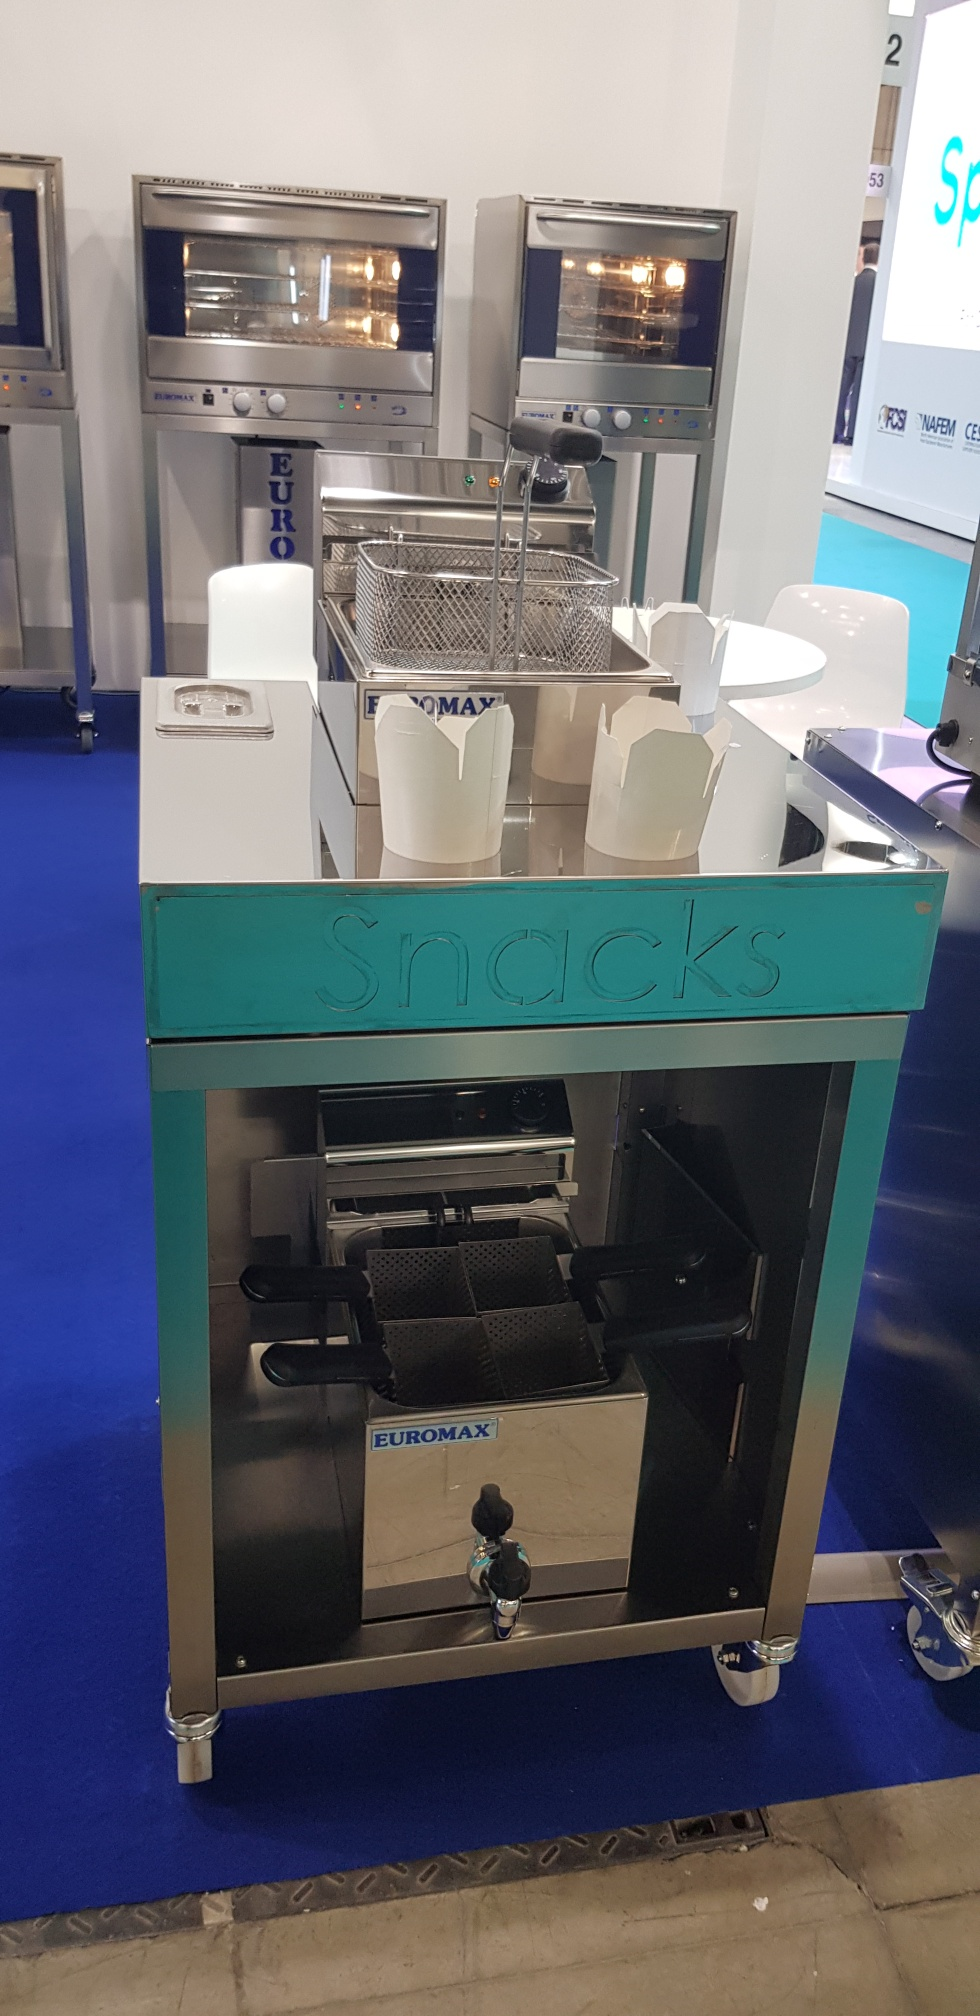 Host 2019 fryer